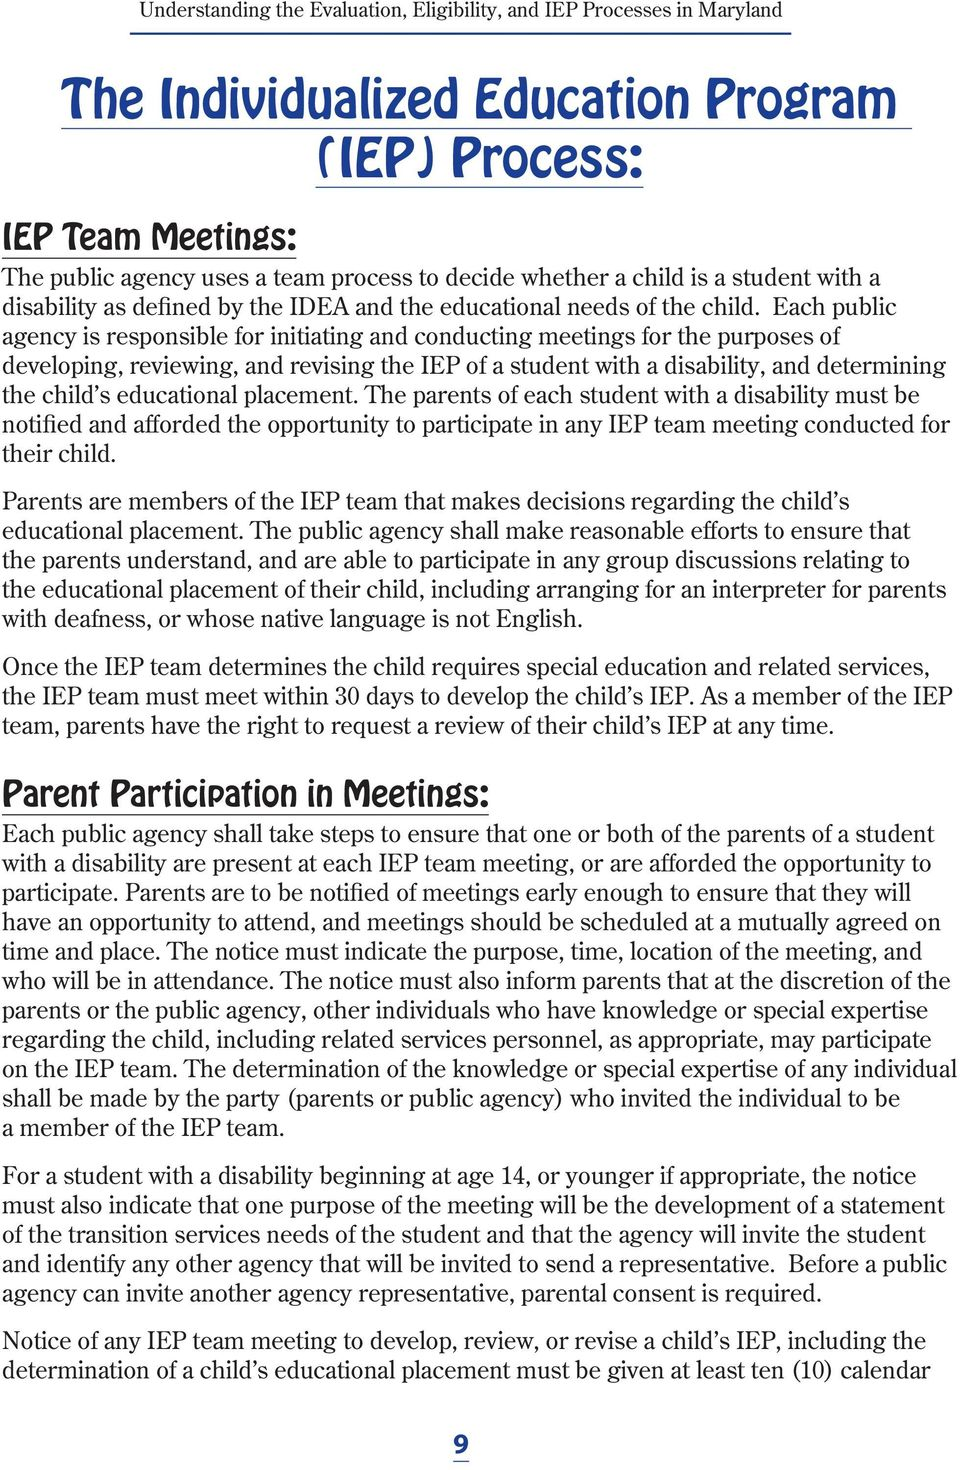 Each public agency is responsible for initiating and conducting meetings for the purposes of developing, reviewing, and revising the IEP of a student with a disability, and determining the child s